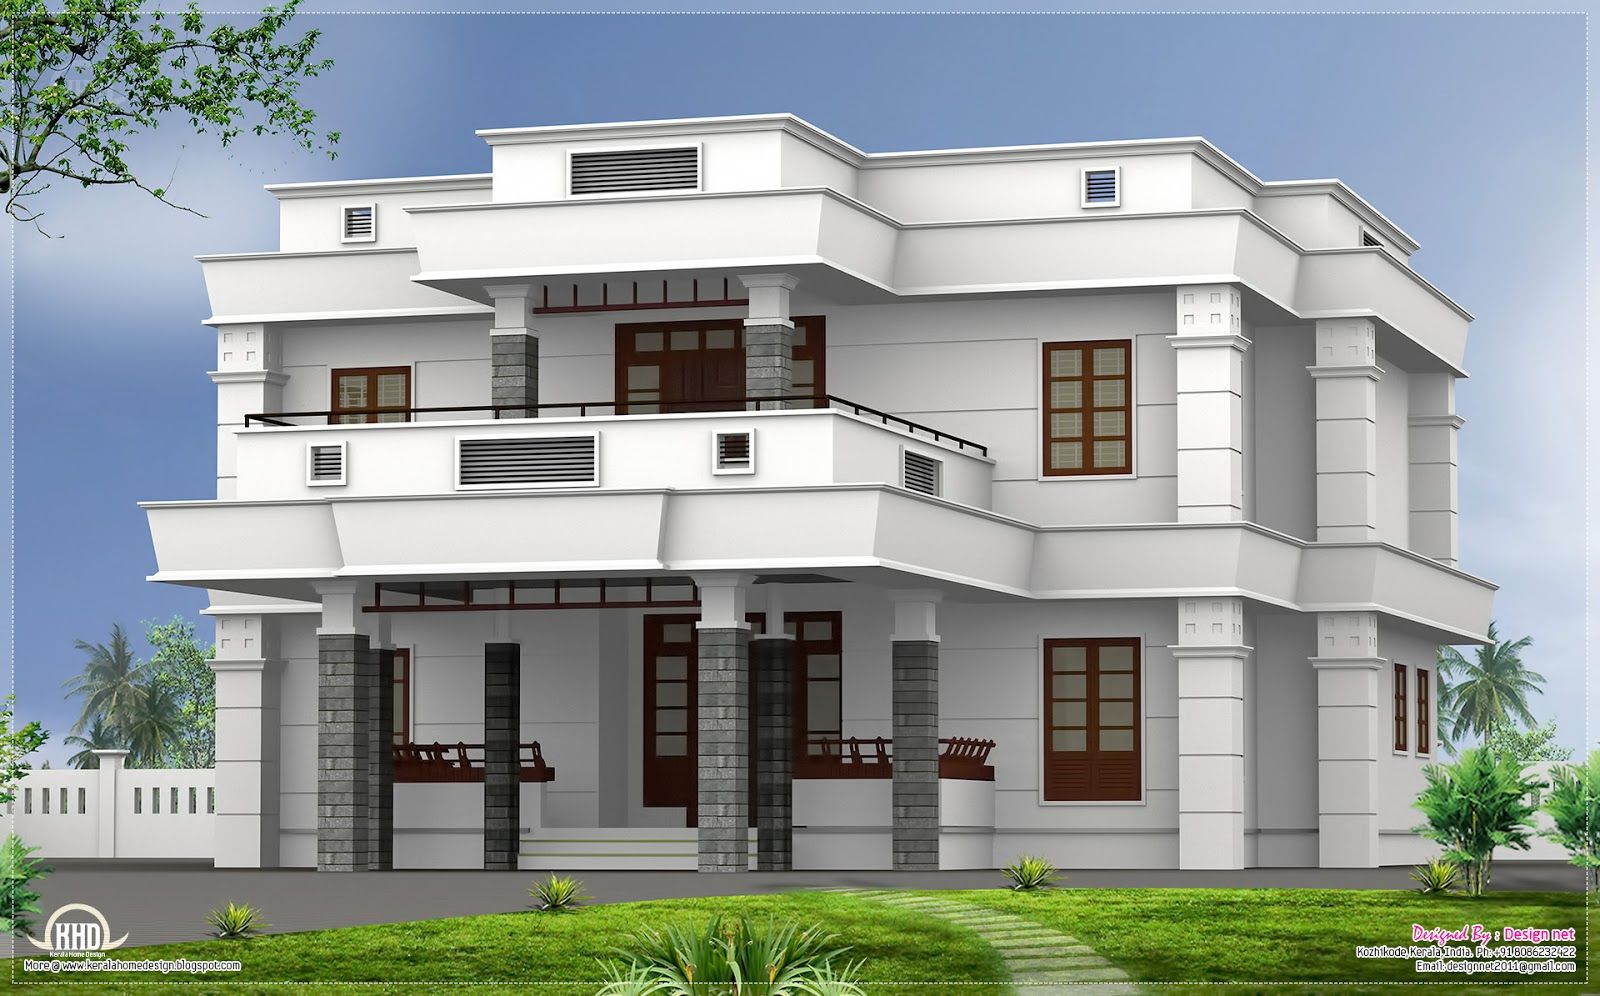 Flat roof homes designs bhk modern flat roof house for Simple house elevation models